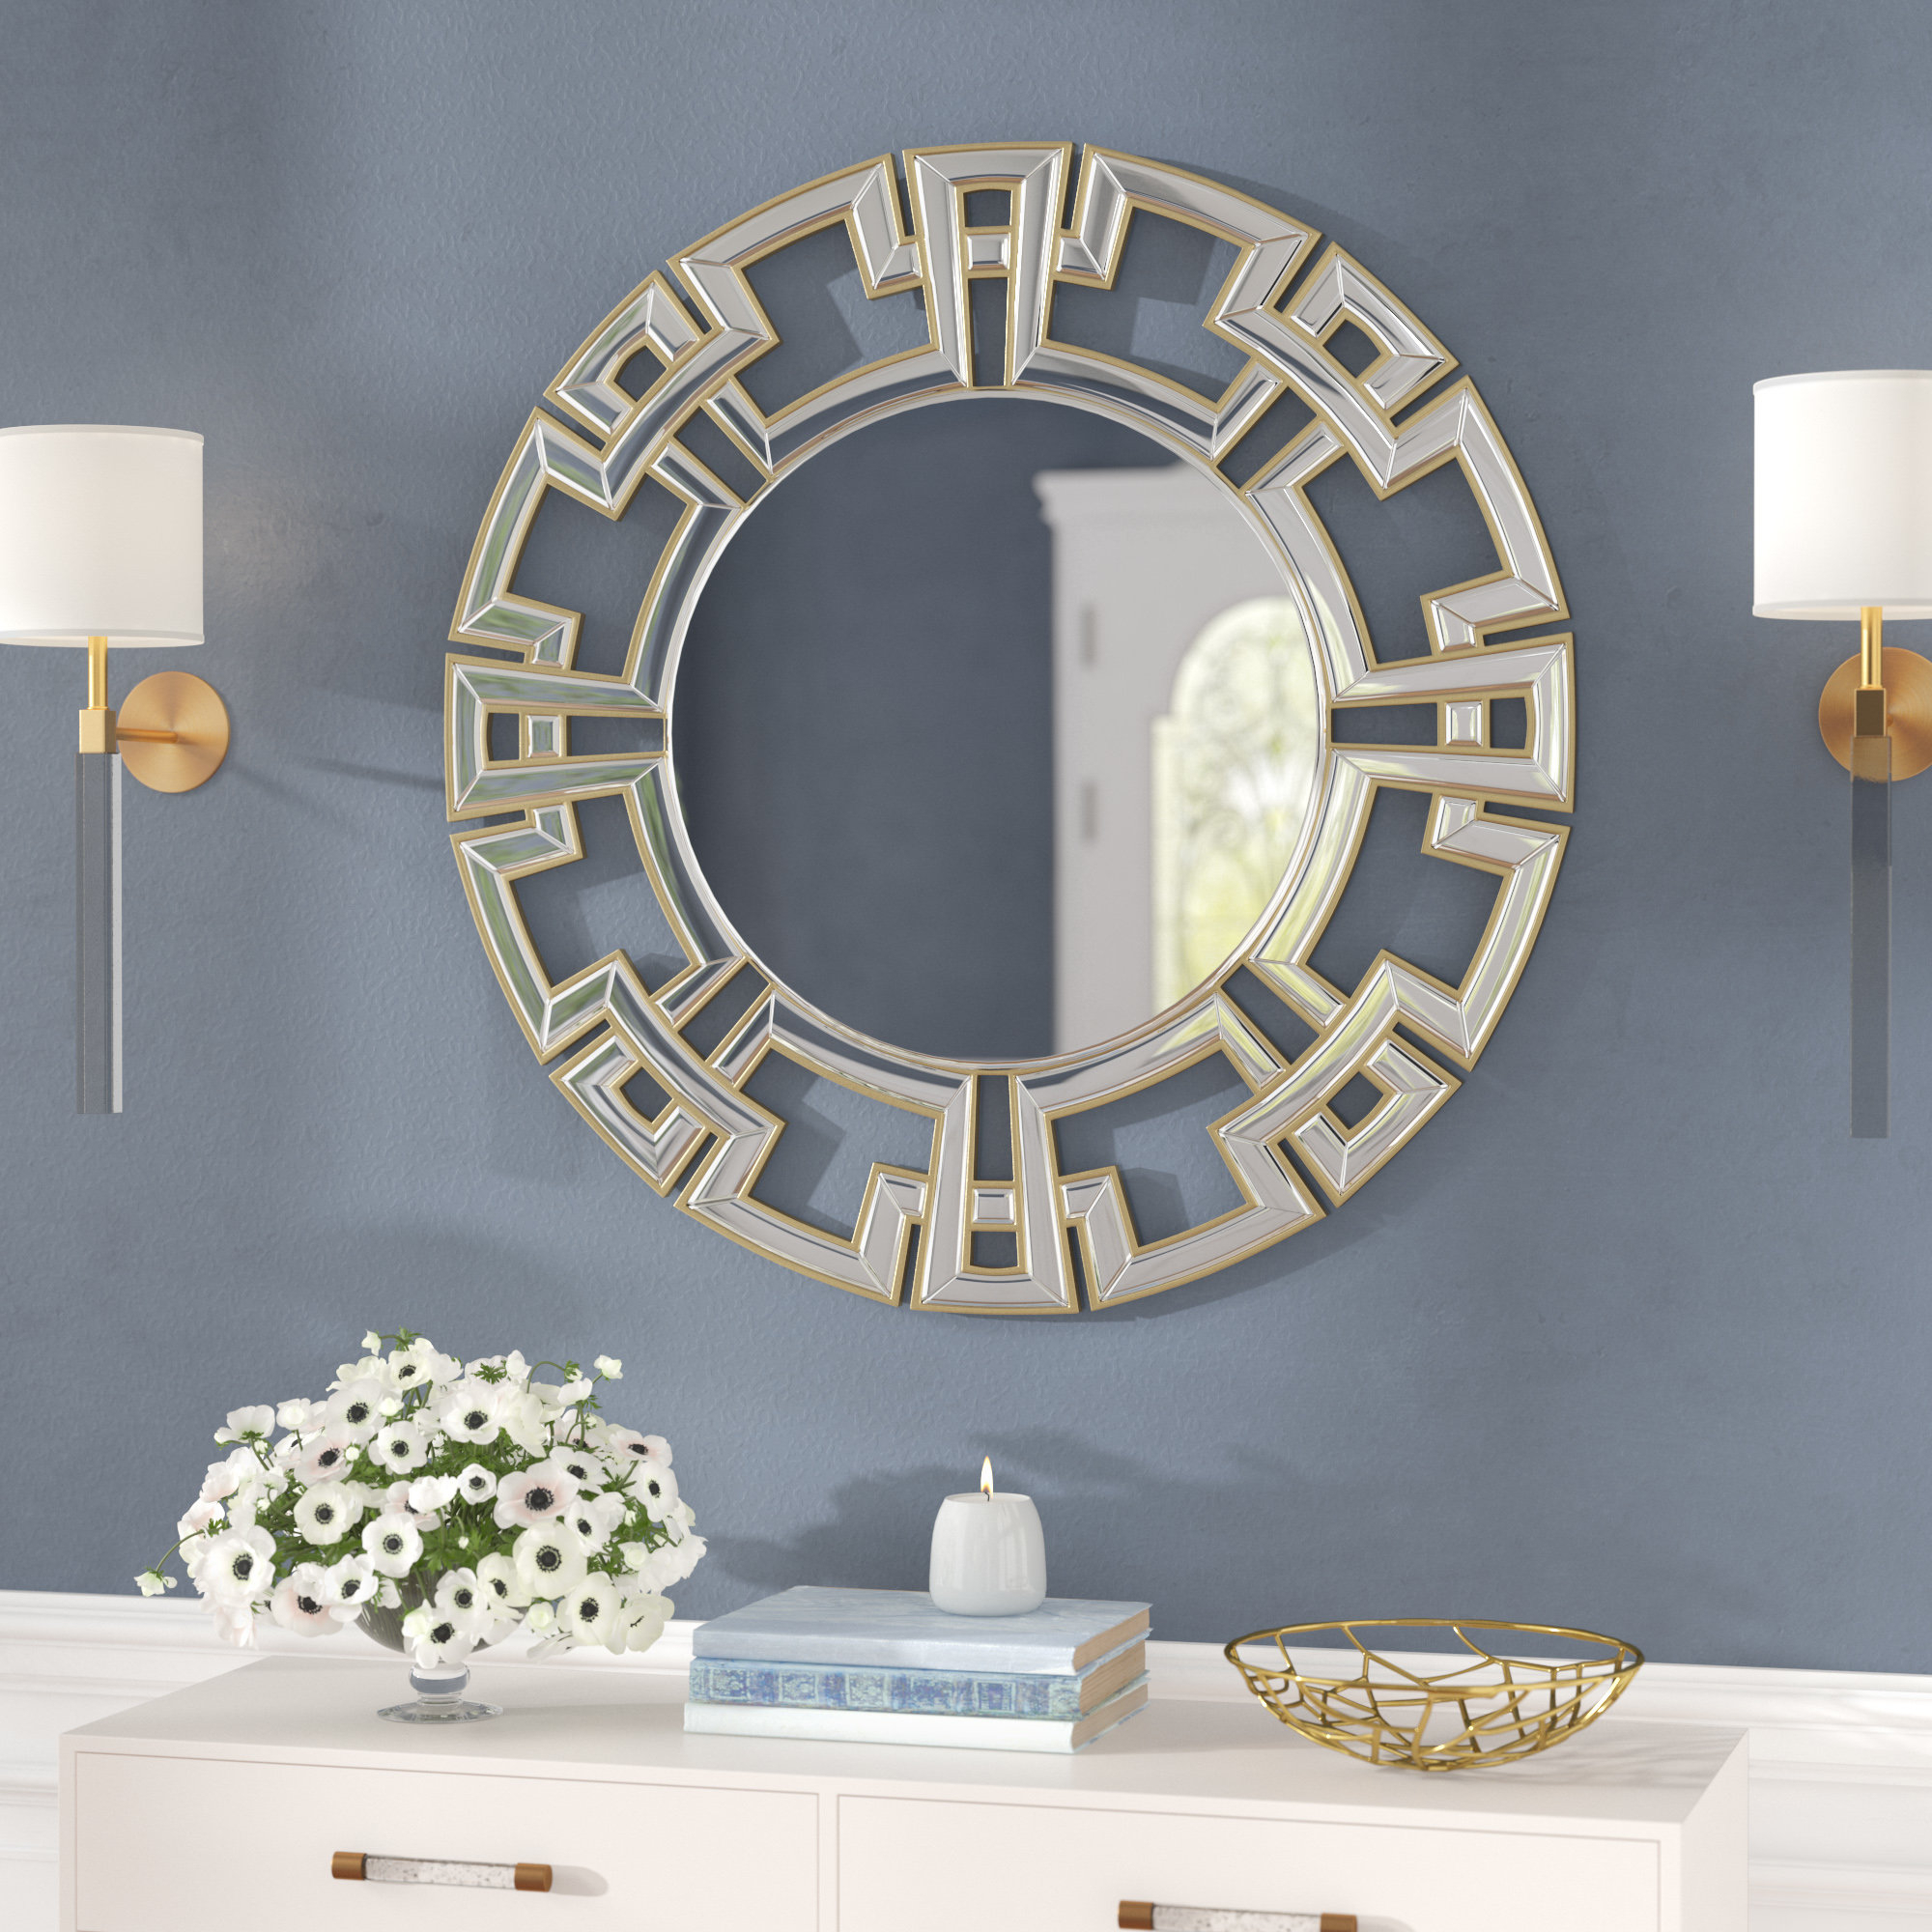 Tata Openwork Round Wall Mirror With Regard To Tata Openwork Round Wall Mirrors (View 4 of 30)